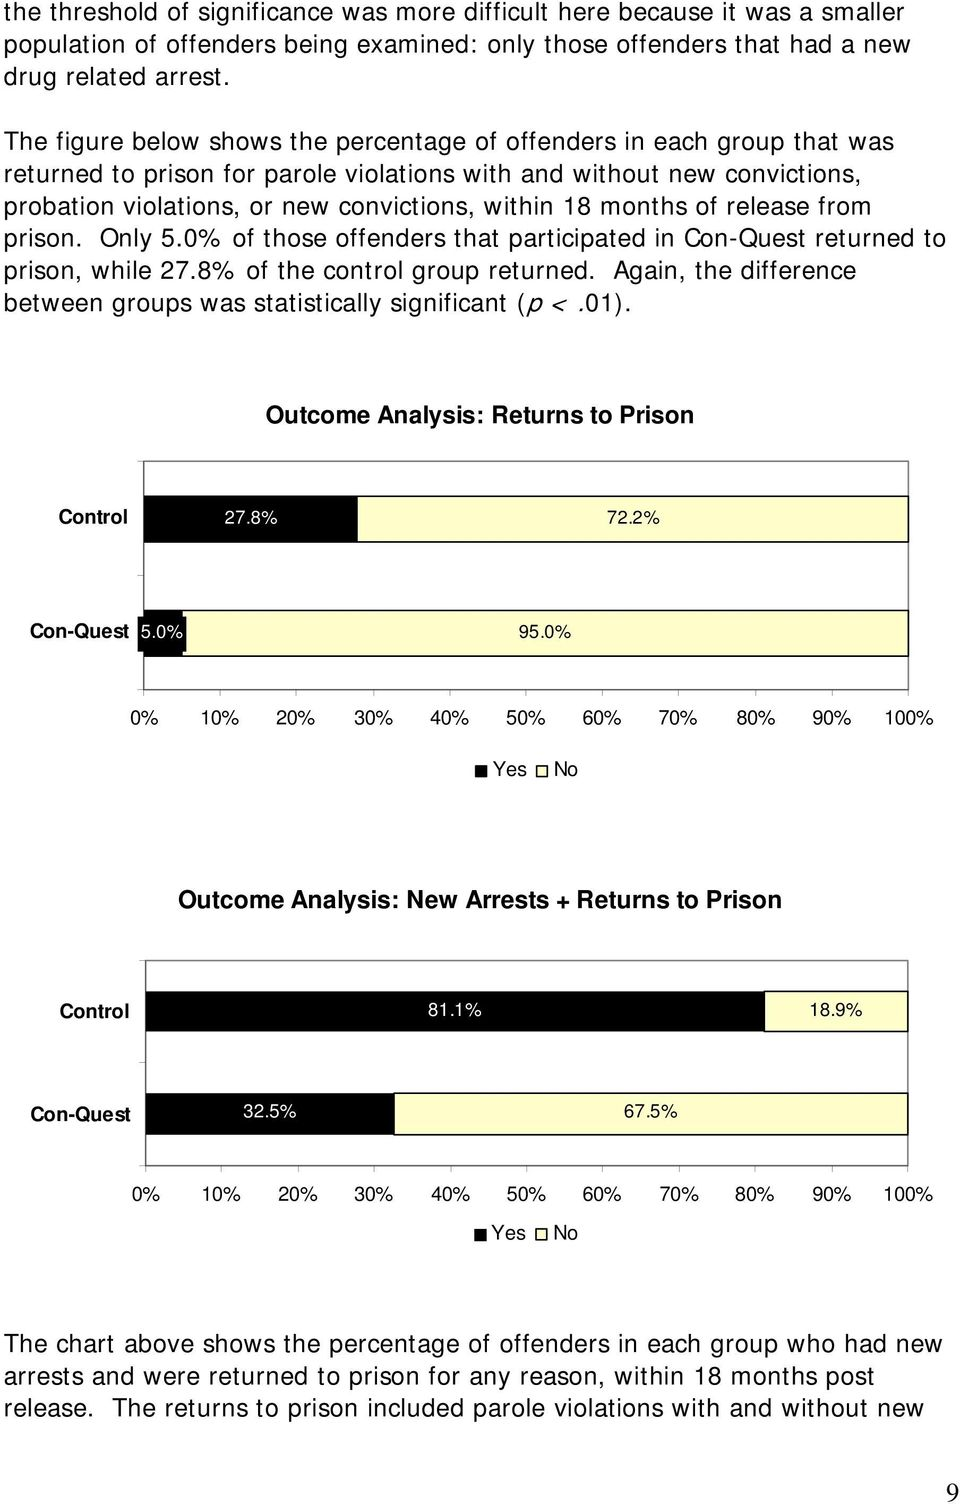 18 months of release from prison. Only 5.0% of those offenders that participated in returned to prison, while 27.8% of the control group returned.